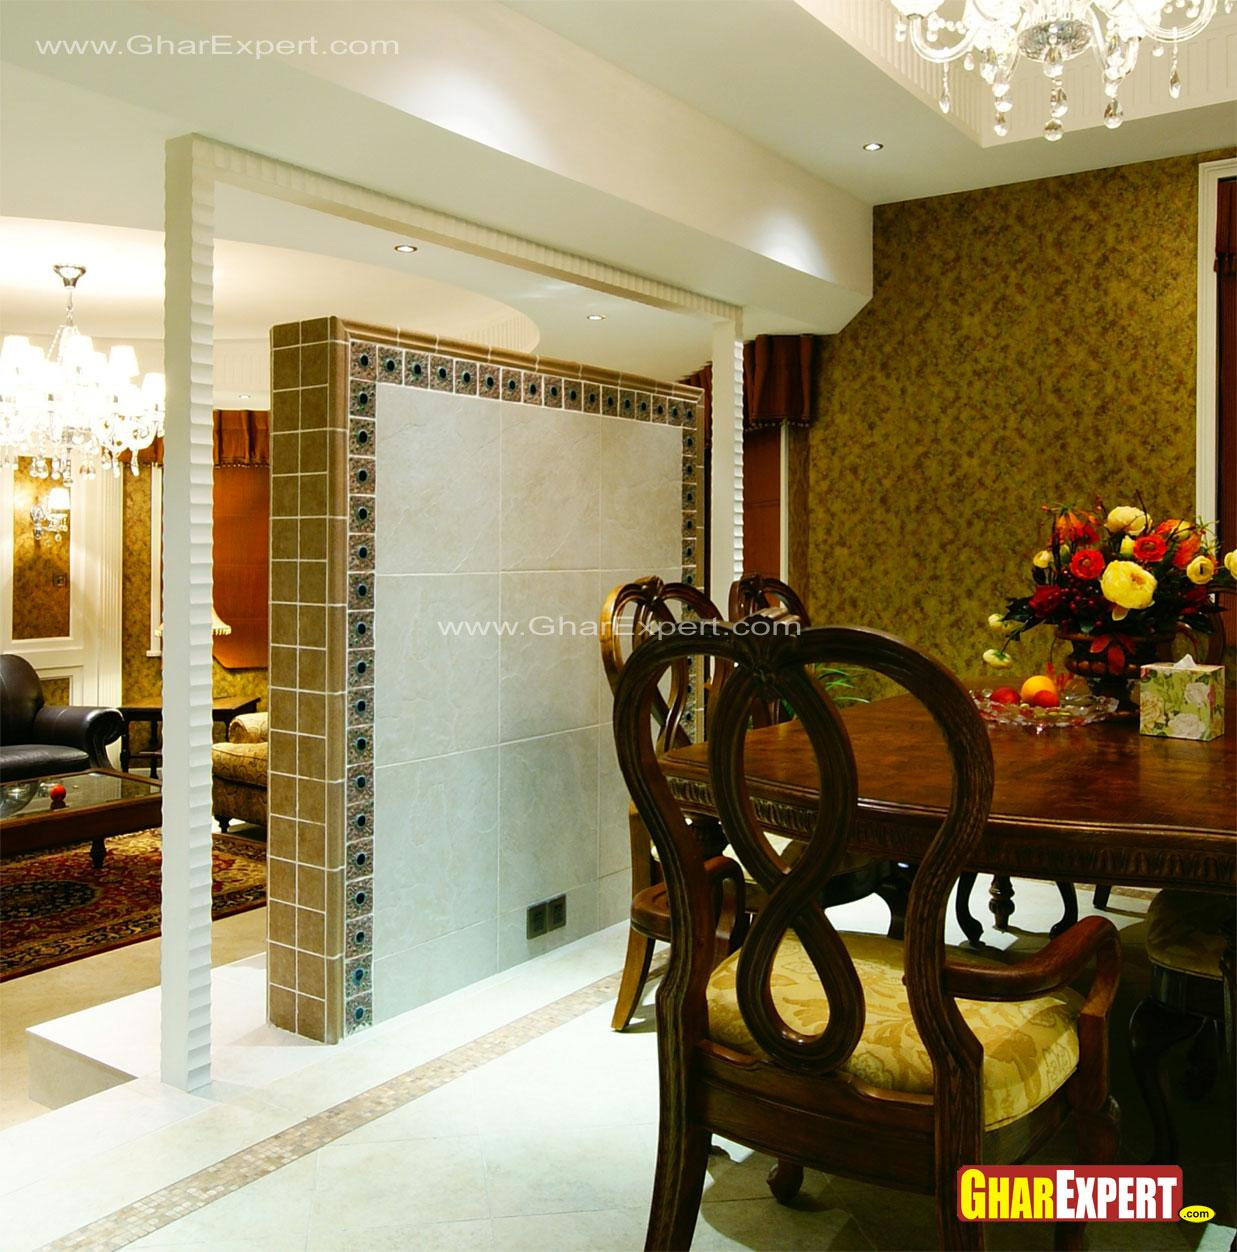 Tiled wall partition in drawing room for dining area gharexpert - Partition kitchen dining ...